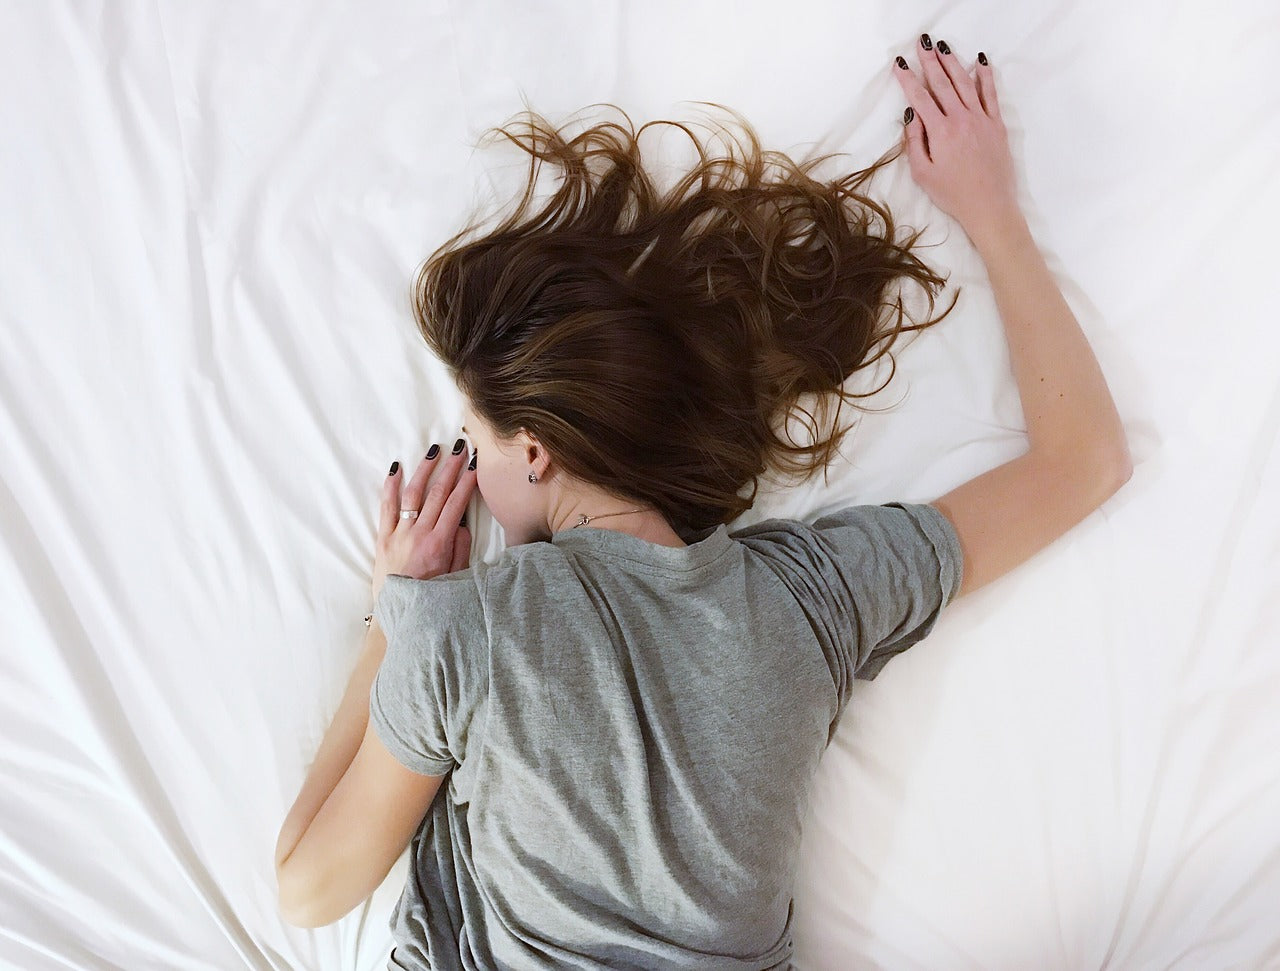 Powernap – the Healthy Alternative to Coffee